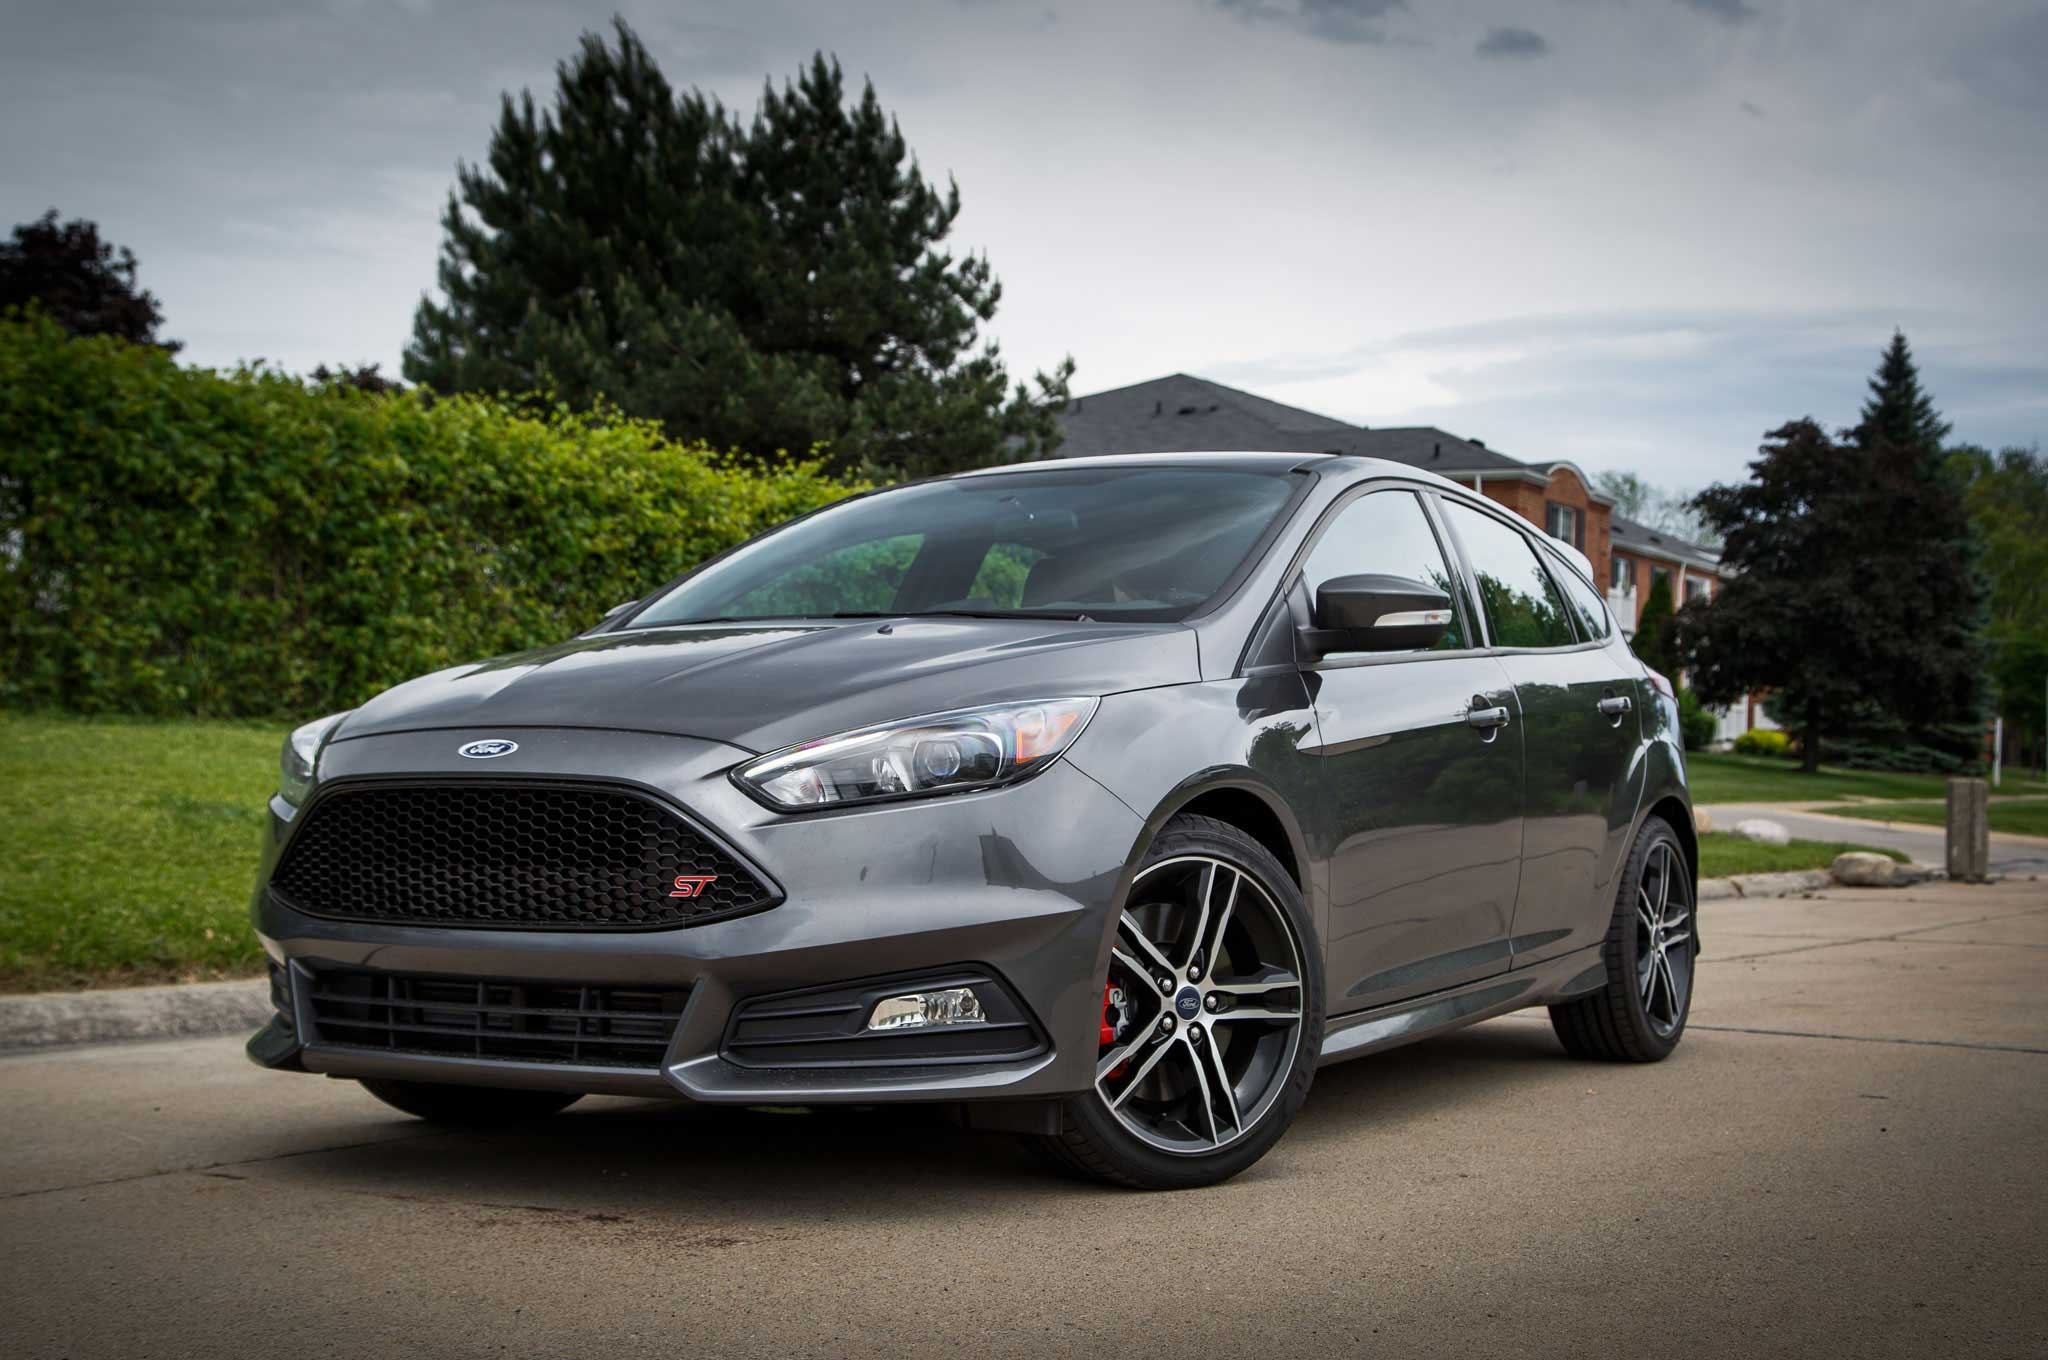 2015 ford focus st review lowrider. Black Bedroom Furniture Sets. Home Design Ideas